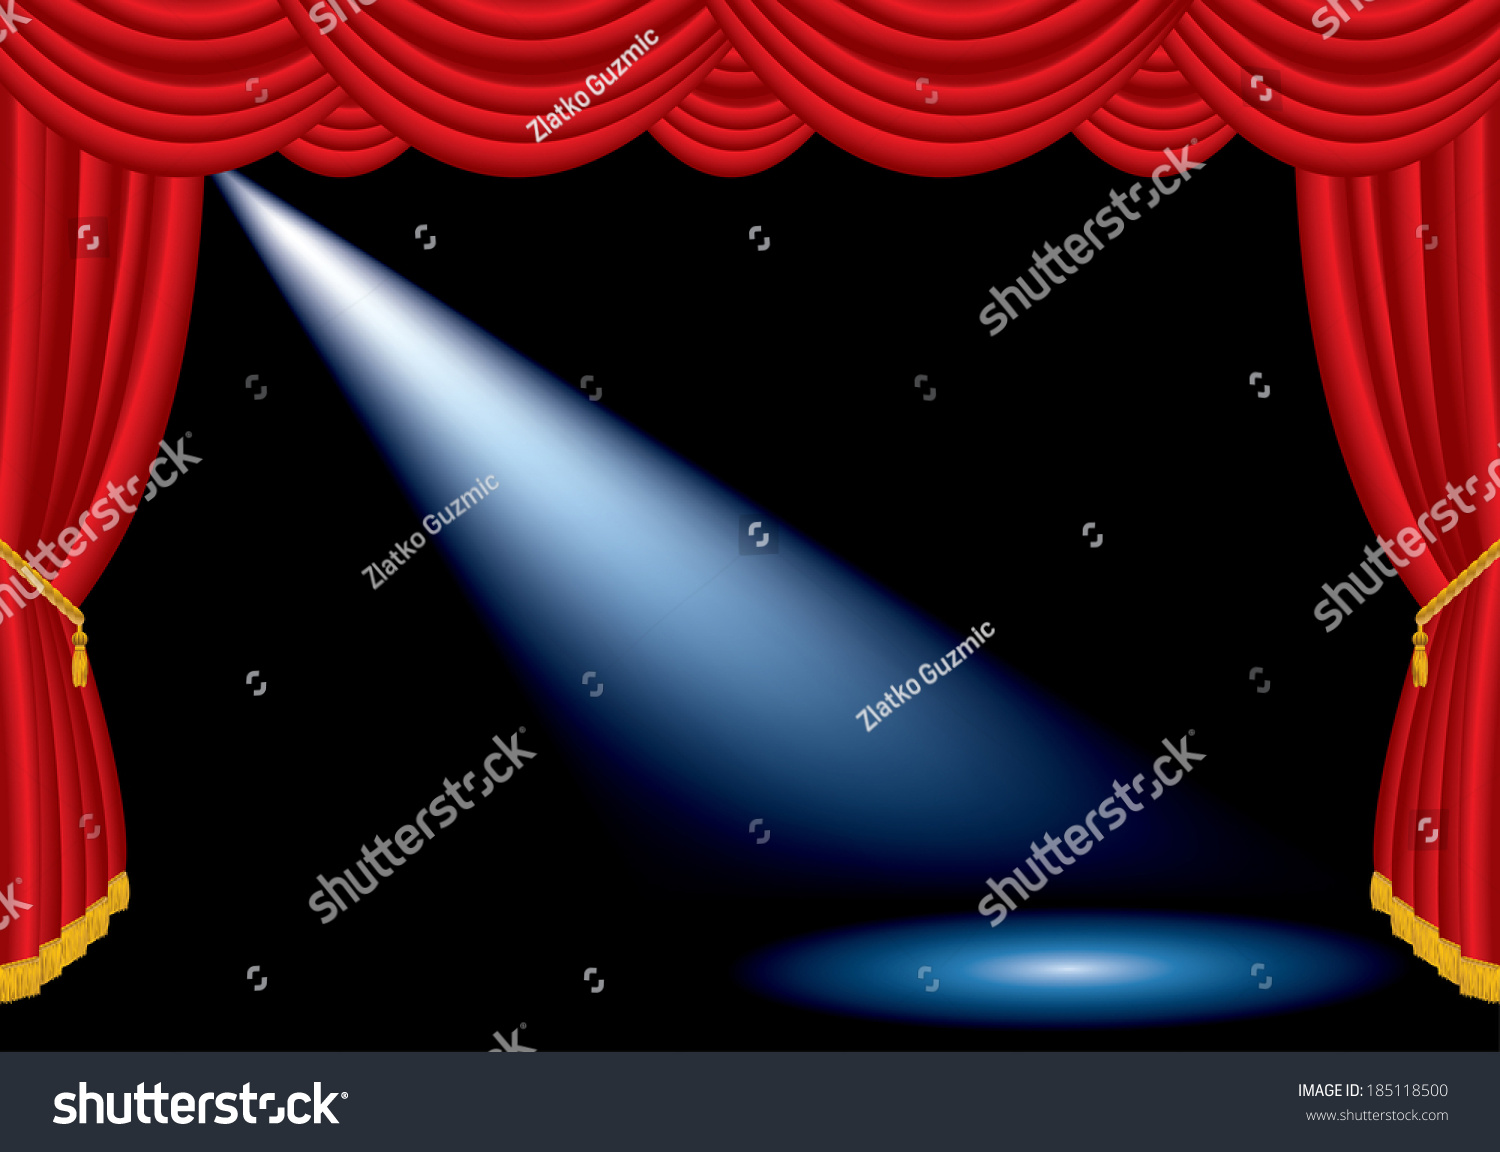 Red curtain spotlight - Vector One Spotlight On Stage With Red Curtain